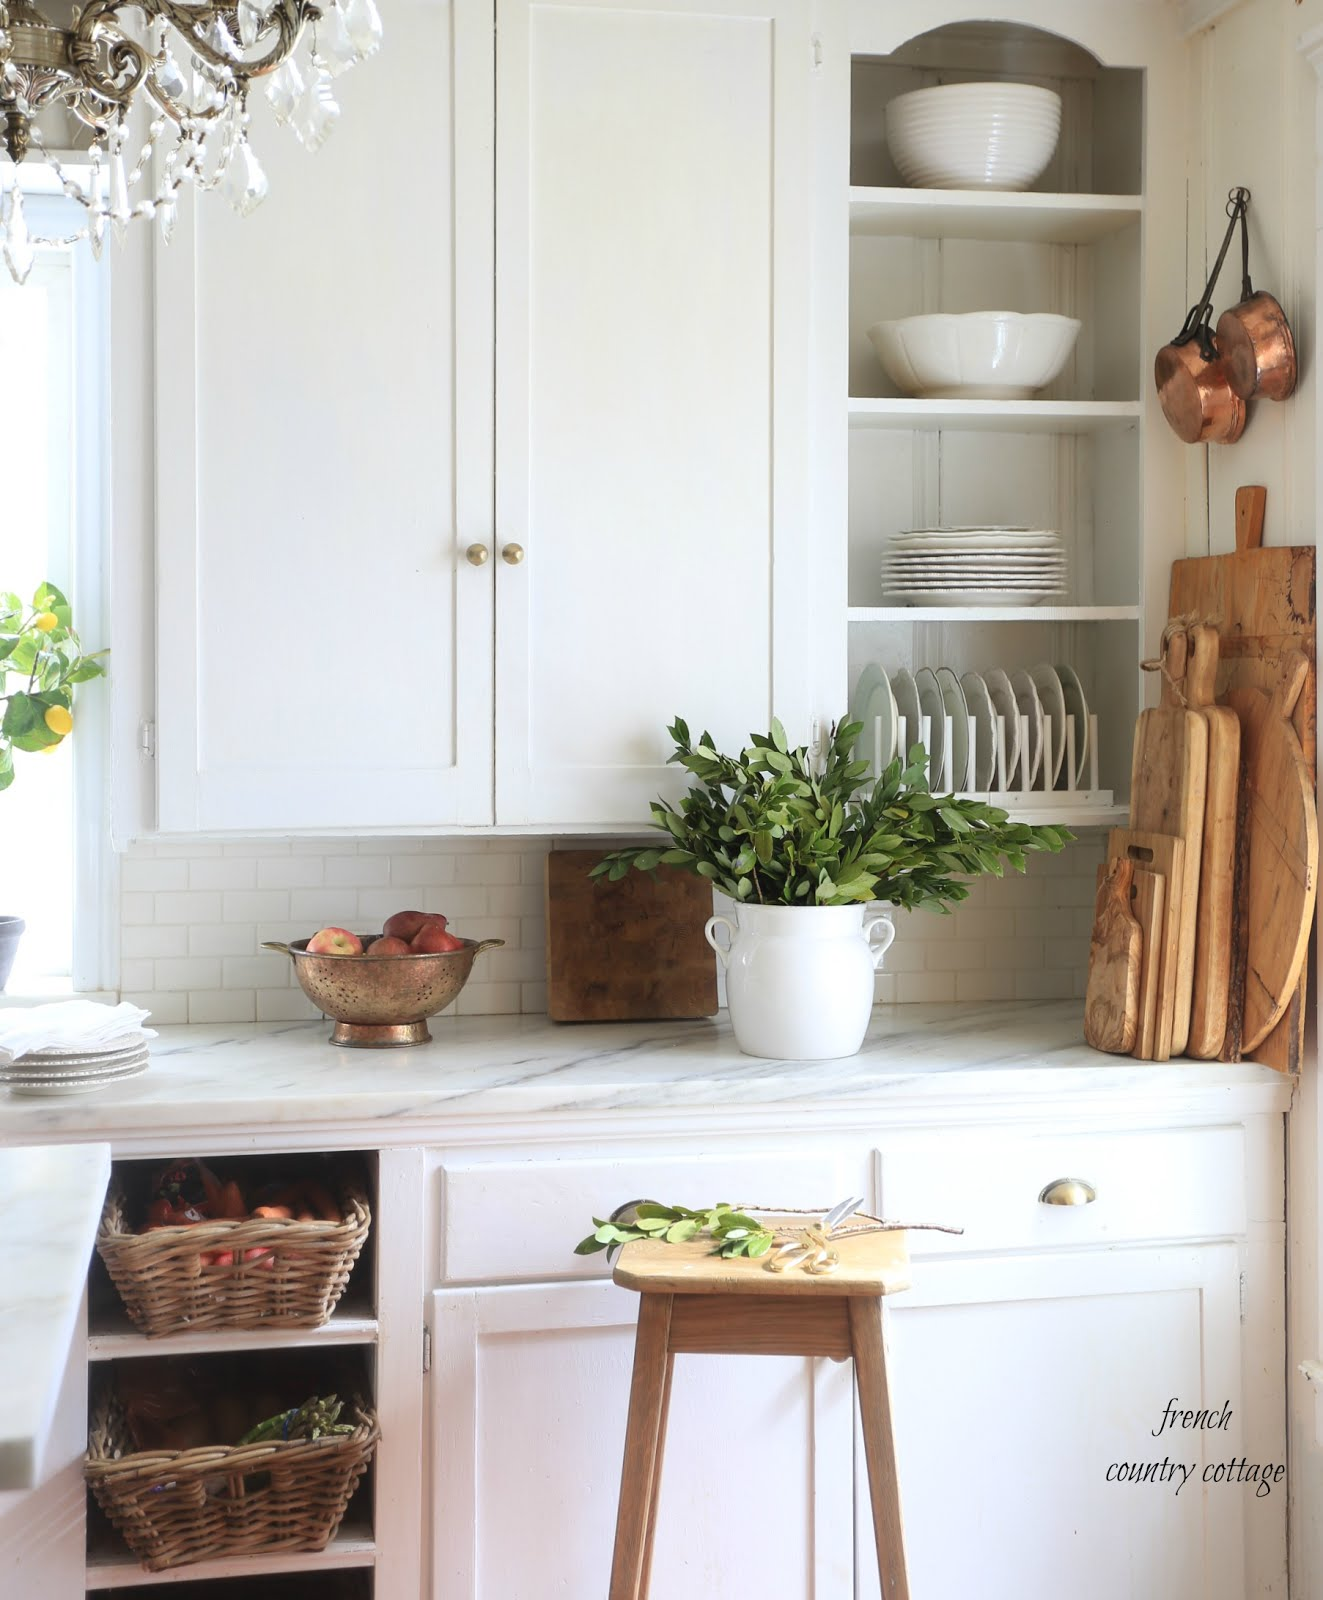 5 ideas for adding vintage charm to your kitchen - FRENCH COUNTRY ...